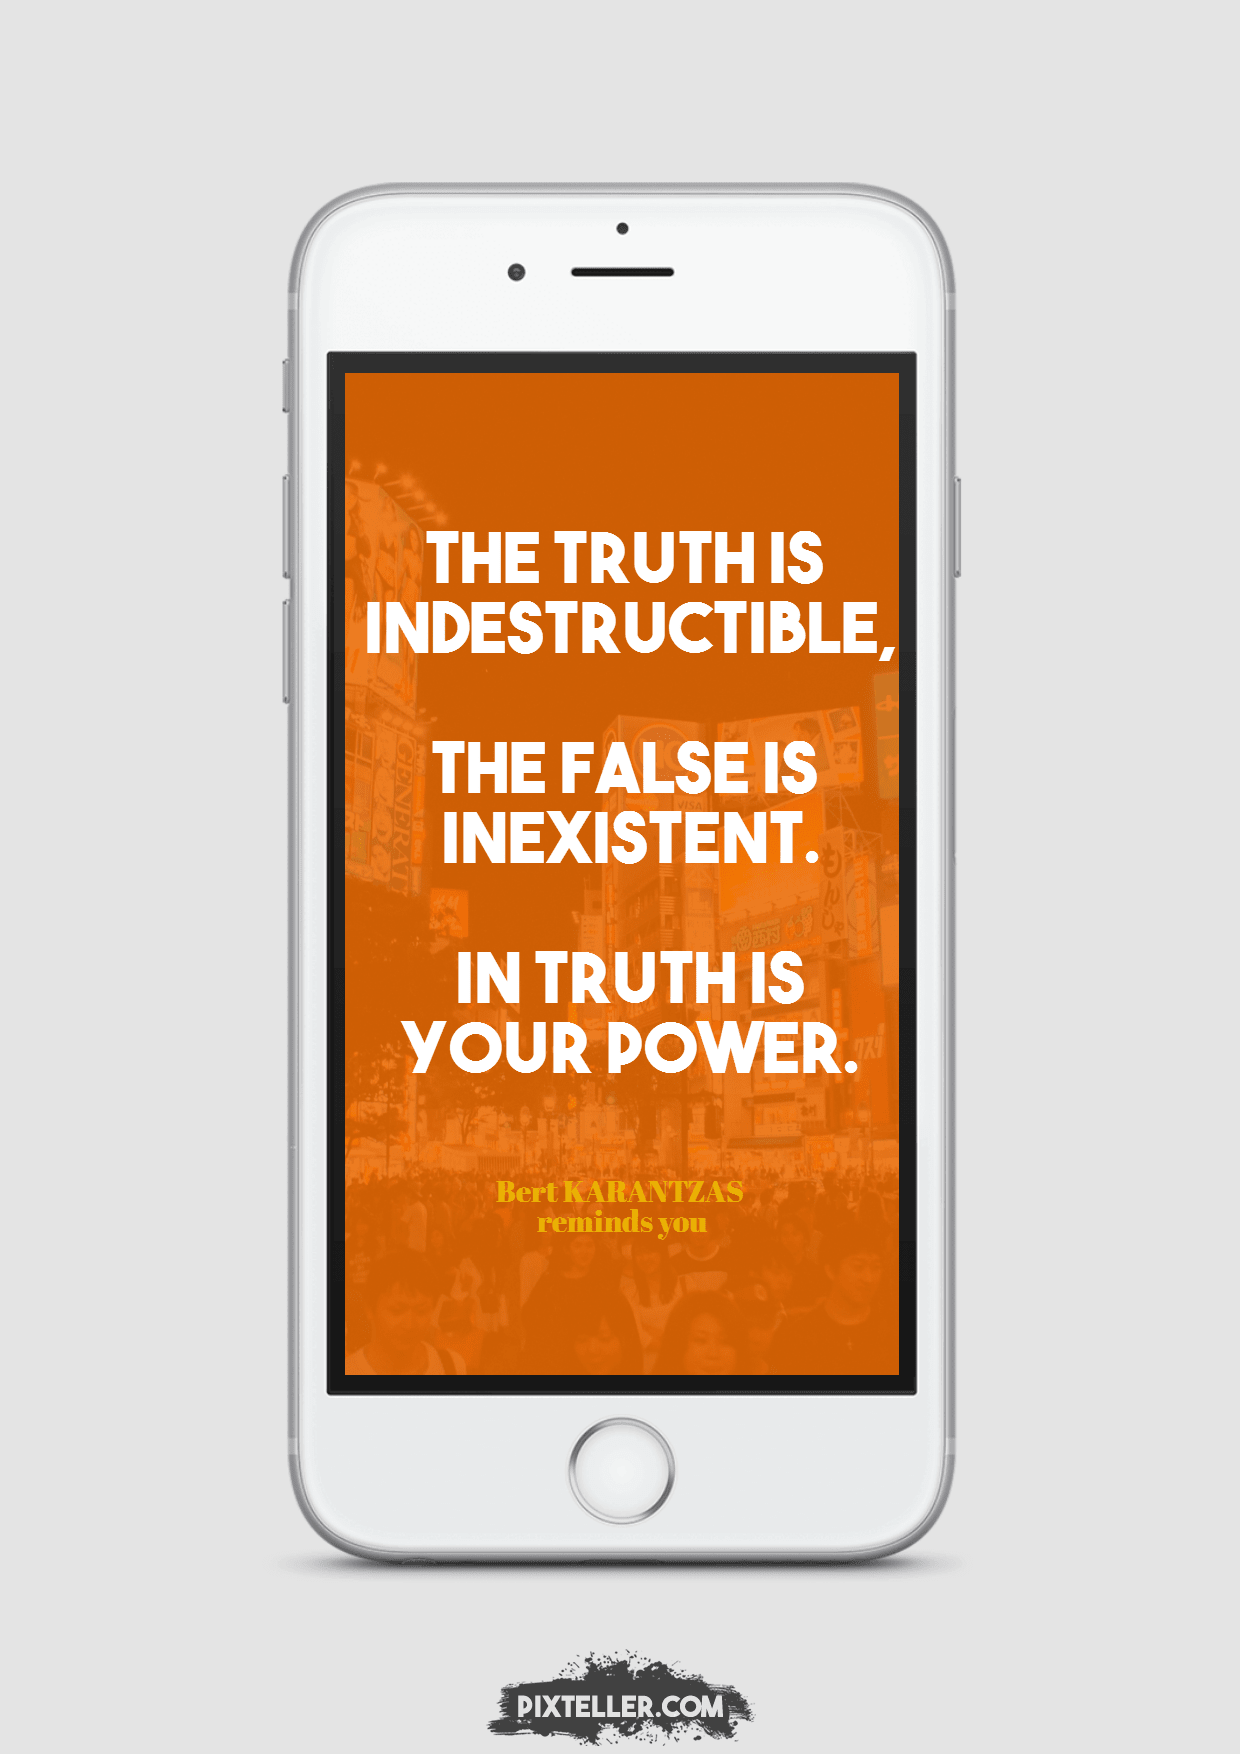 Text,                Font,                Product,                Mobile,                Phone,                Gadget,                Poster,                Quote,                Mockup,                Inspiration,                Life,                Photo,                Image,                 Free Image